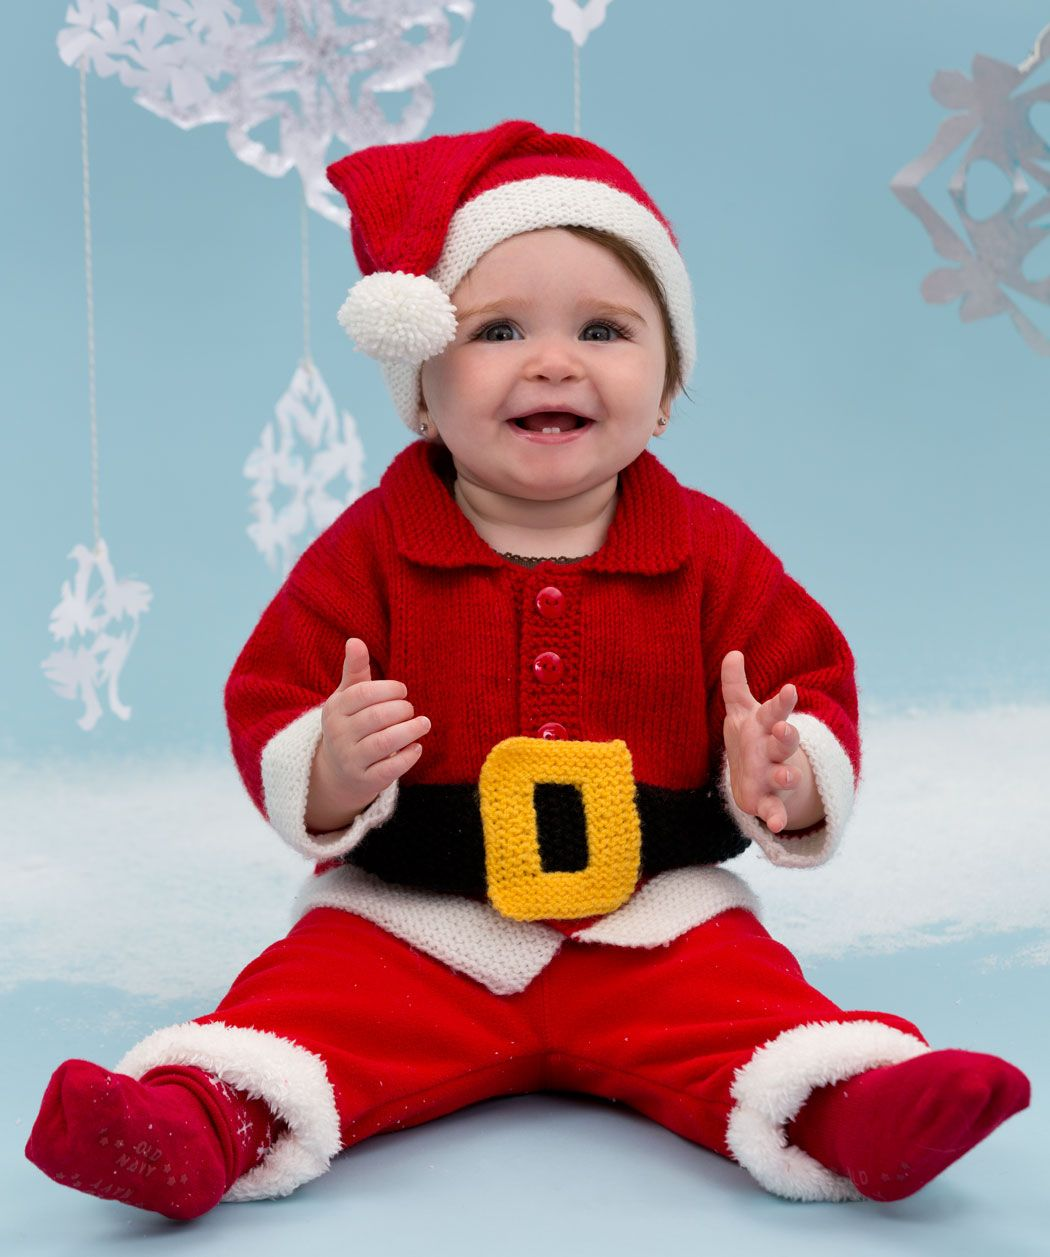 Santa baby suit free knitting pattern annegeddes redheart make the holidays even more fun with this adorable free knit baby santa suit the free knitting pattern includes a jacket hat pants and belt bankloansurffo Images